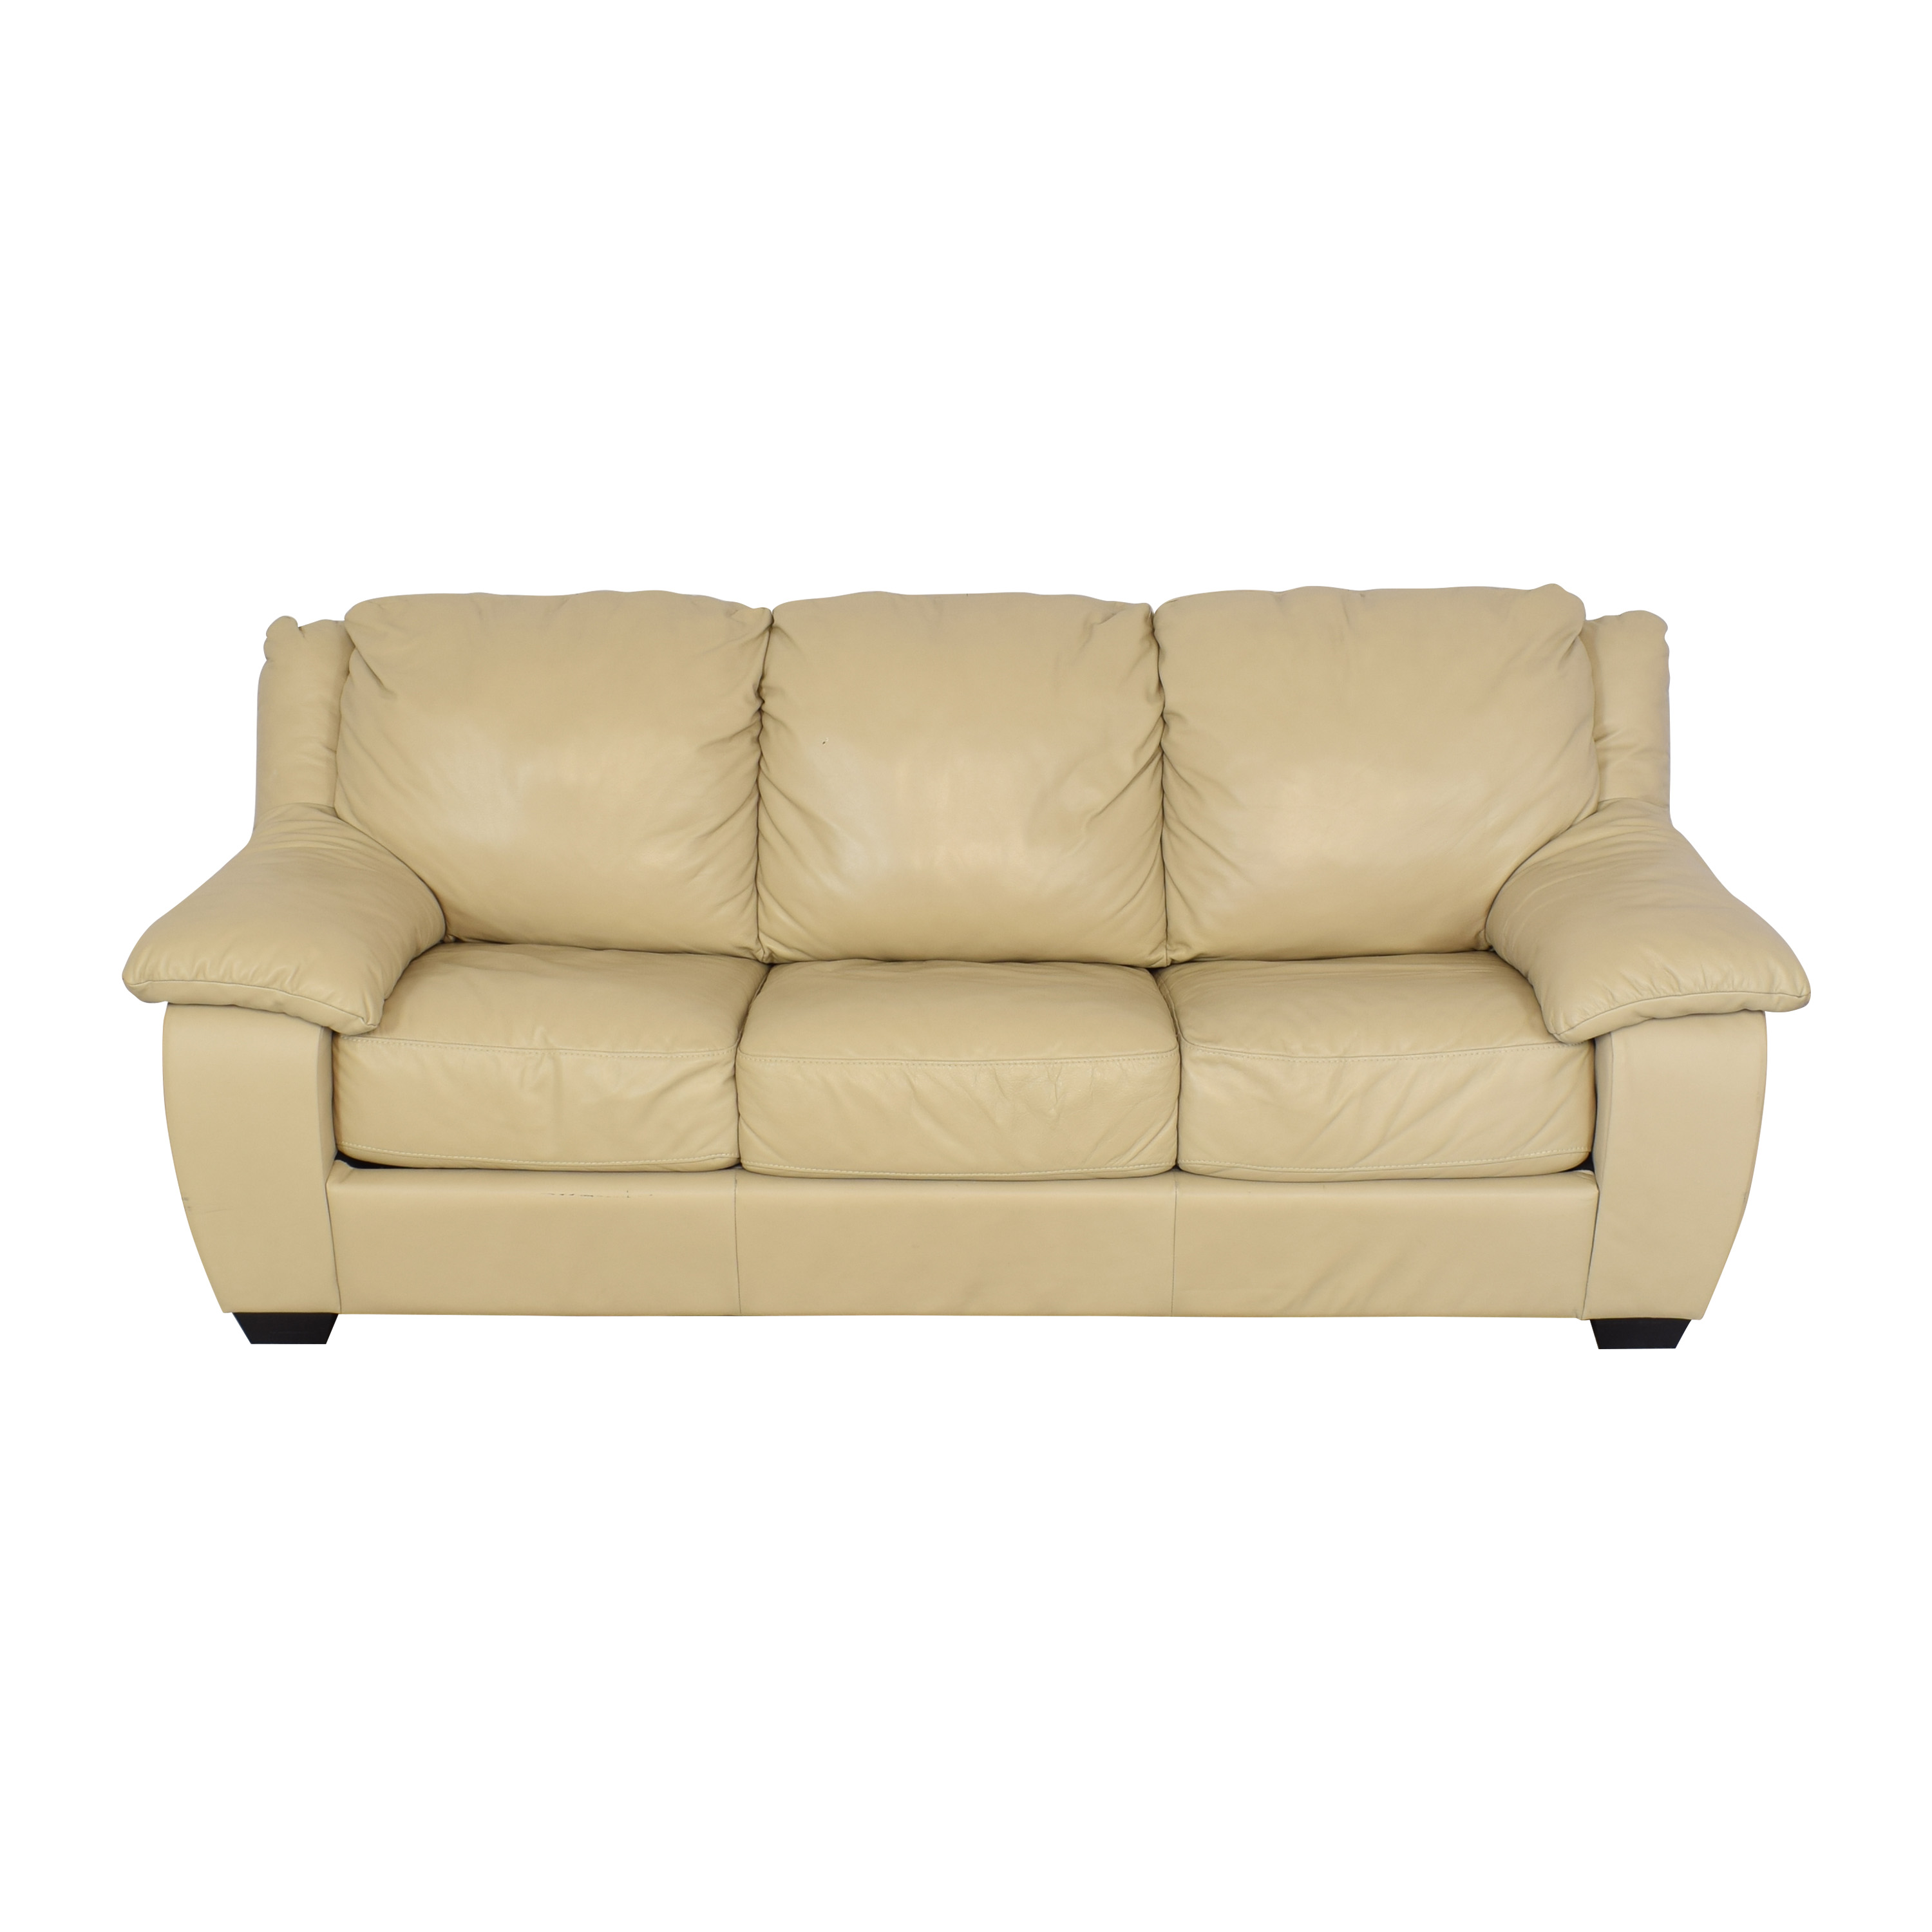 Italsofa Italsofa Blair Sleeper Sofa pa